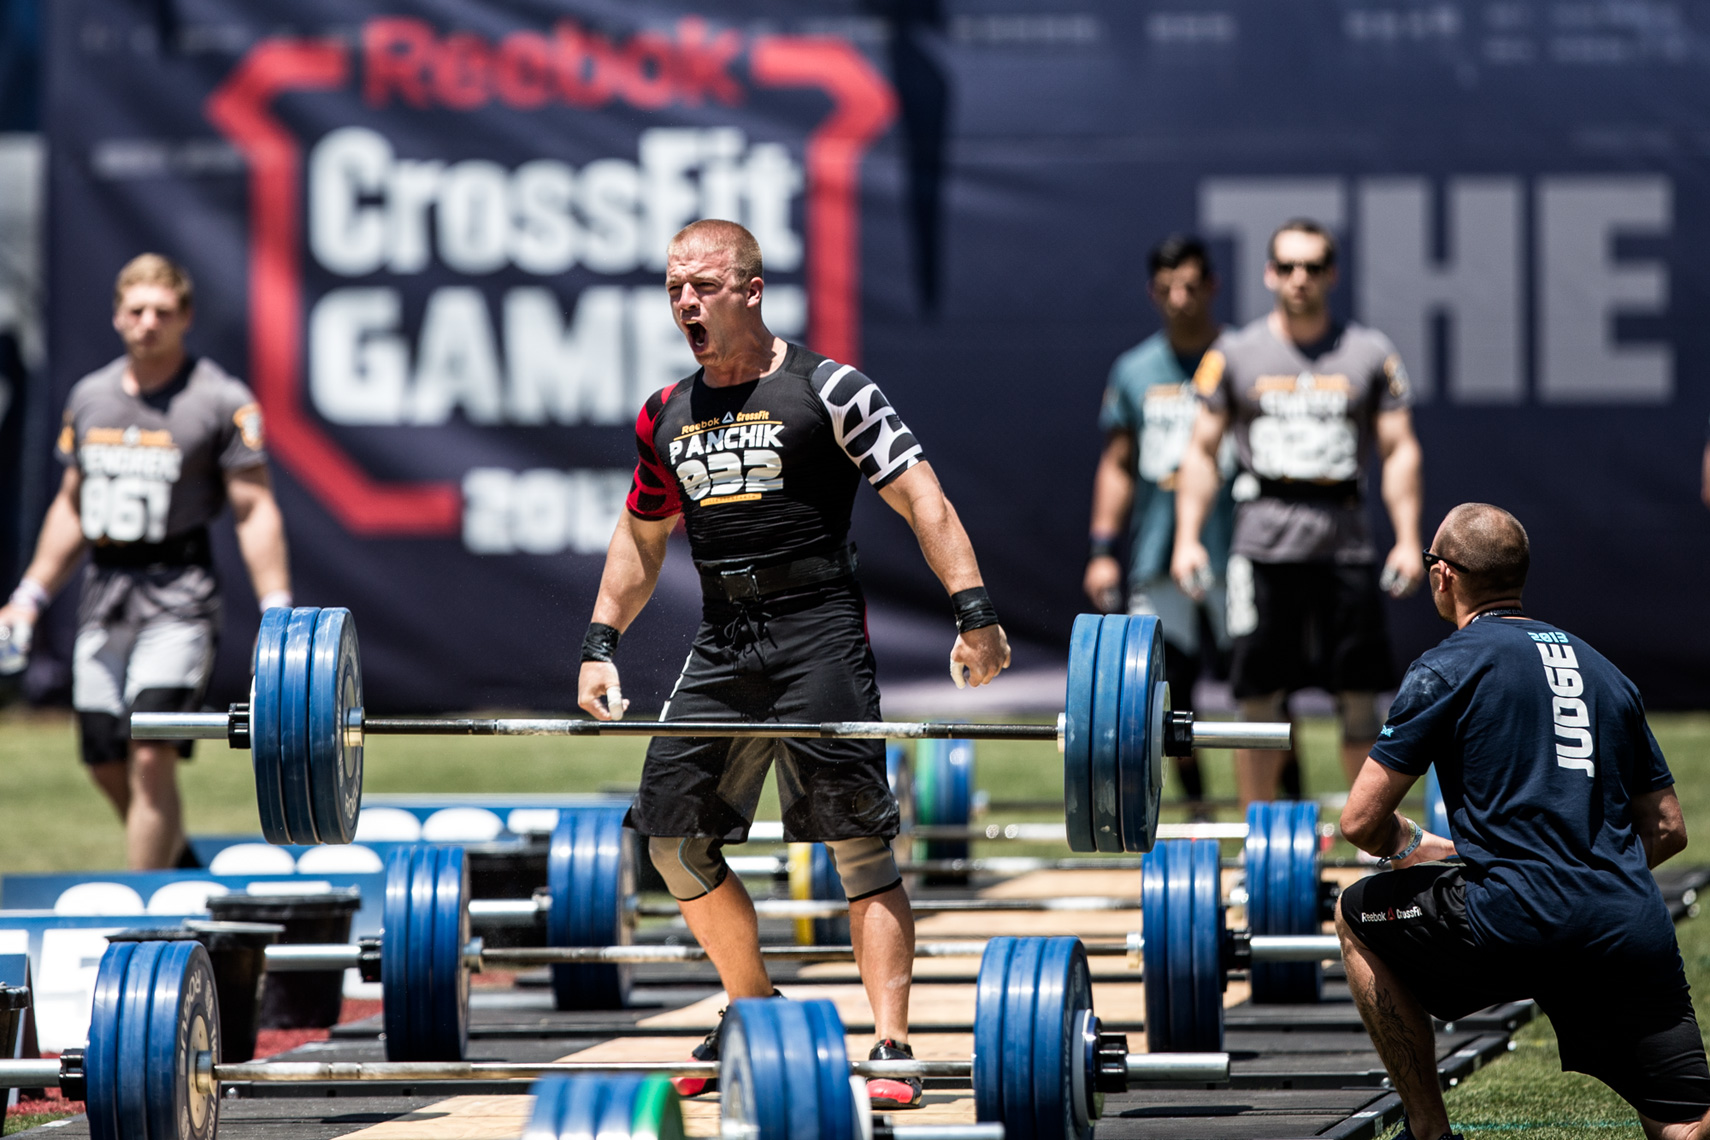 Los Angeles Sports Photography, Michael Brian, athlete, Crossfit, Scott Panchik celebrates successful lift, Reebok Crossfit Games athlete, Clean and Jerk Ladder